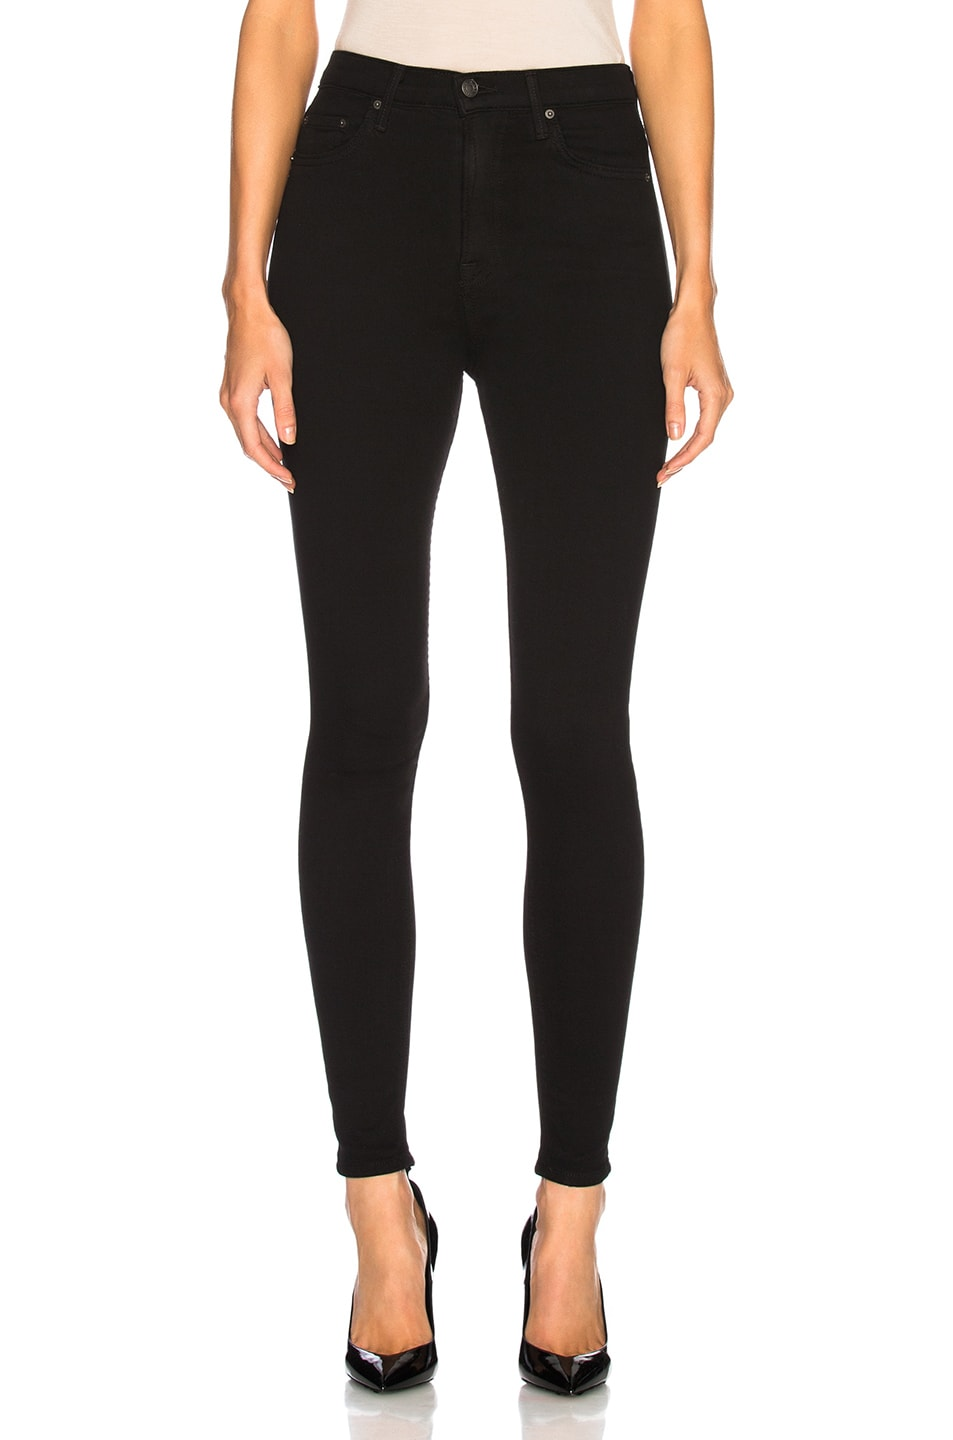 Image 1 of GRLFRND Kendall Super Stretch High Rise Skinny Jean in Black Magic Woman